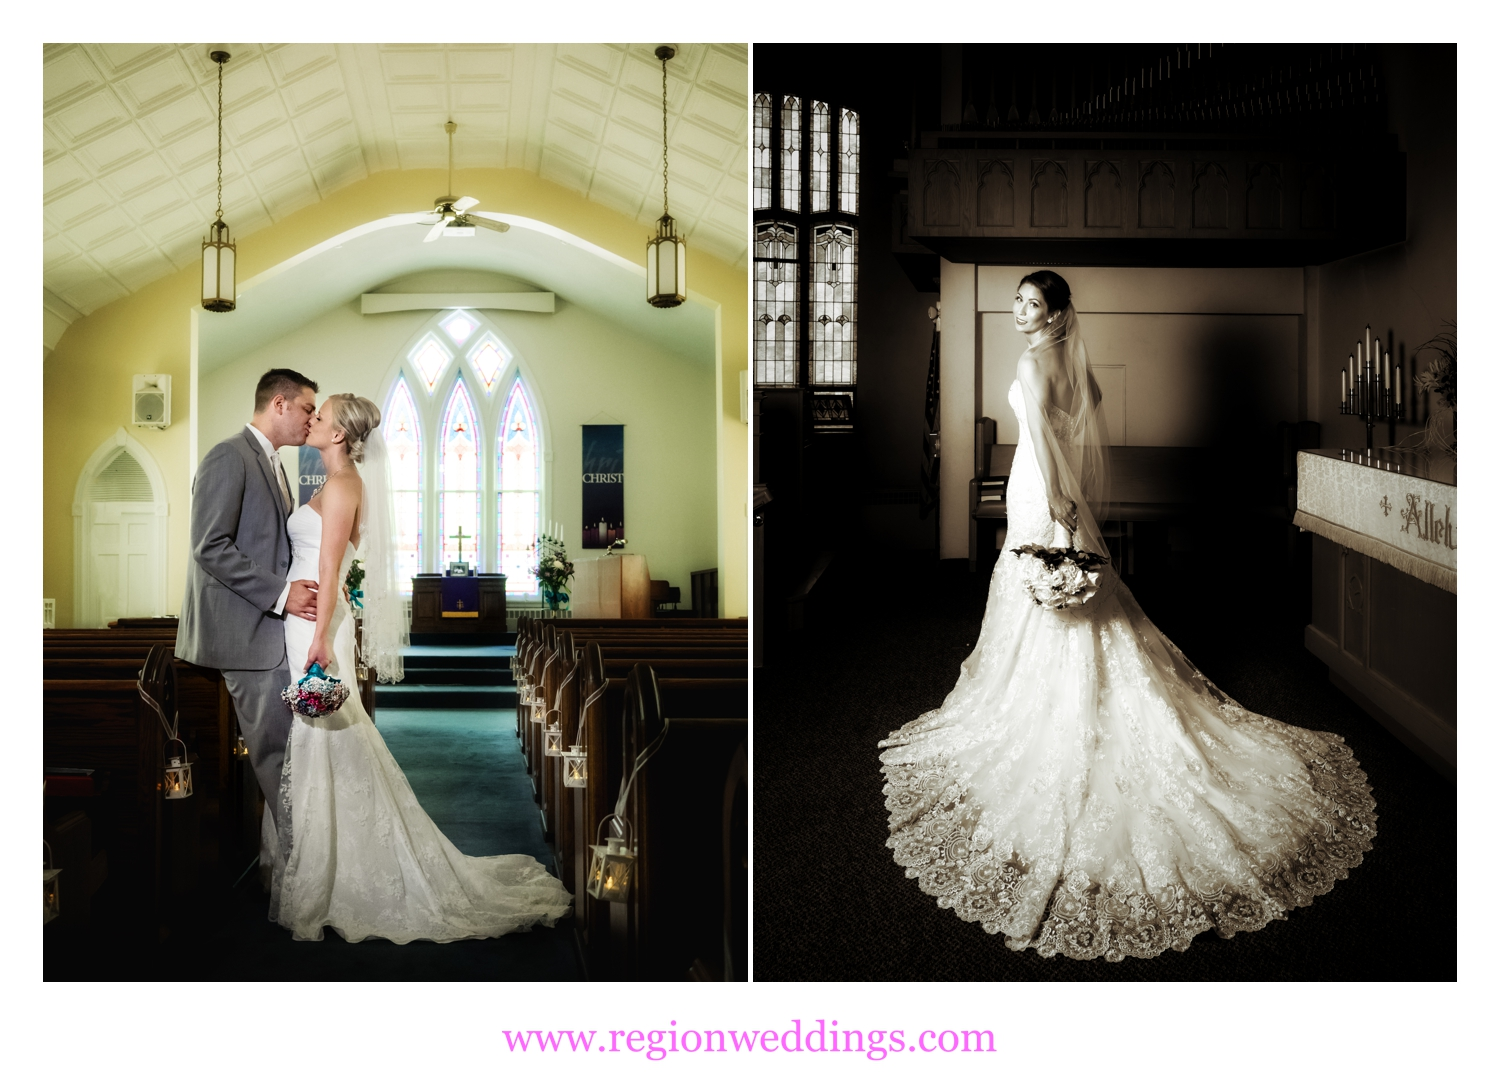 Artistic church wedding photos in Northwest Indiana and Chicago.